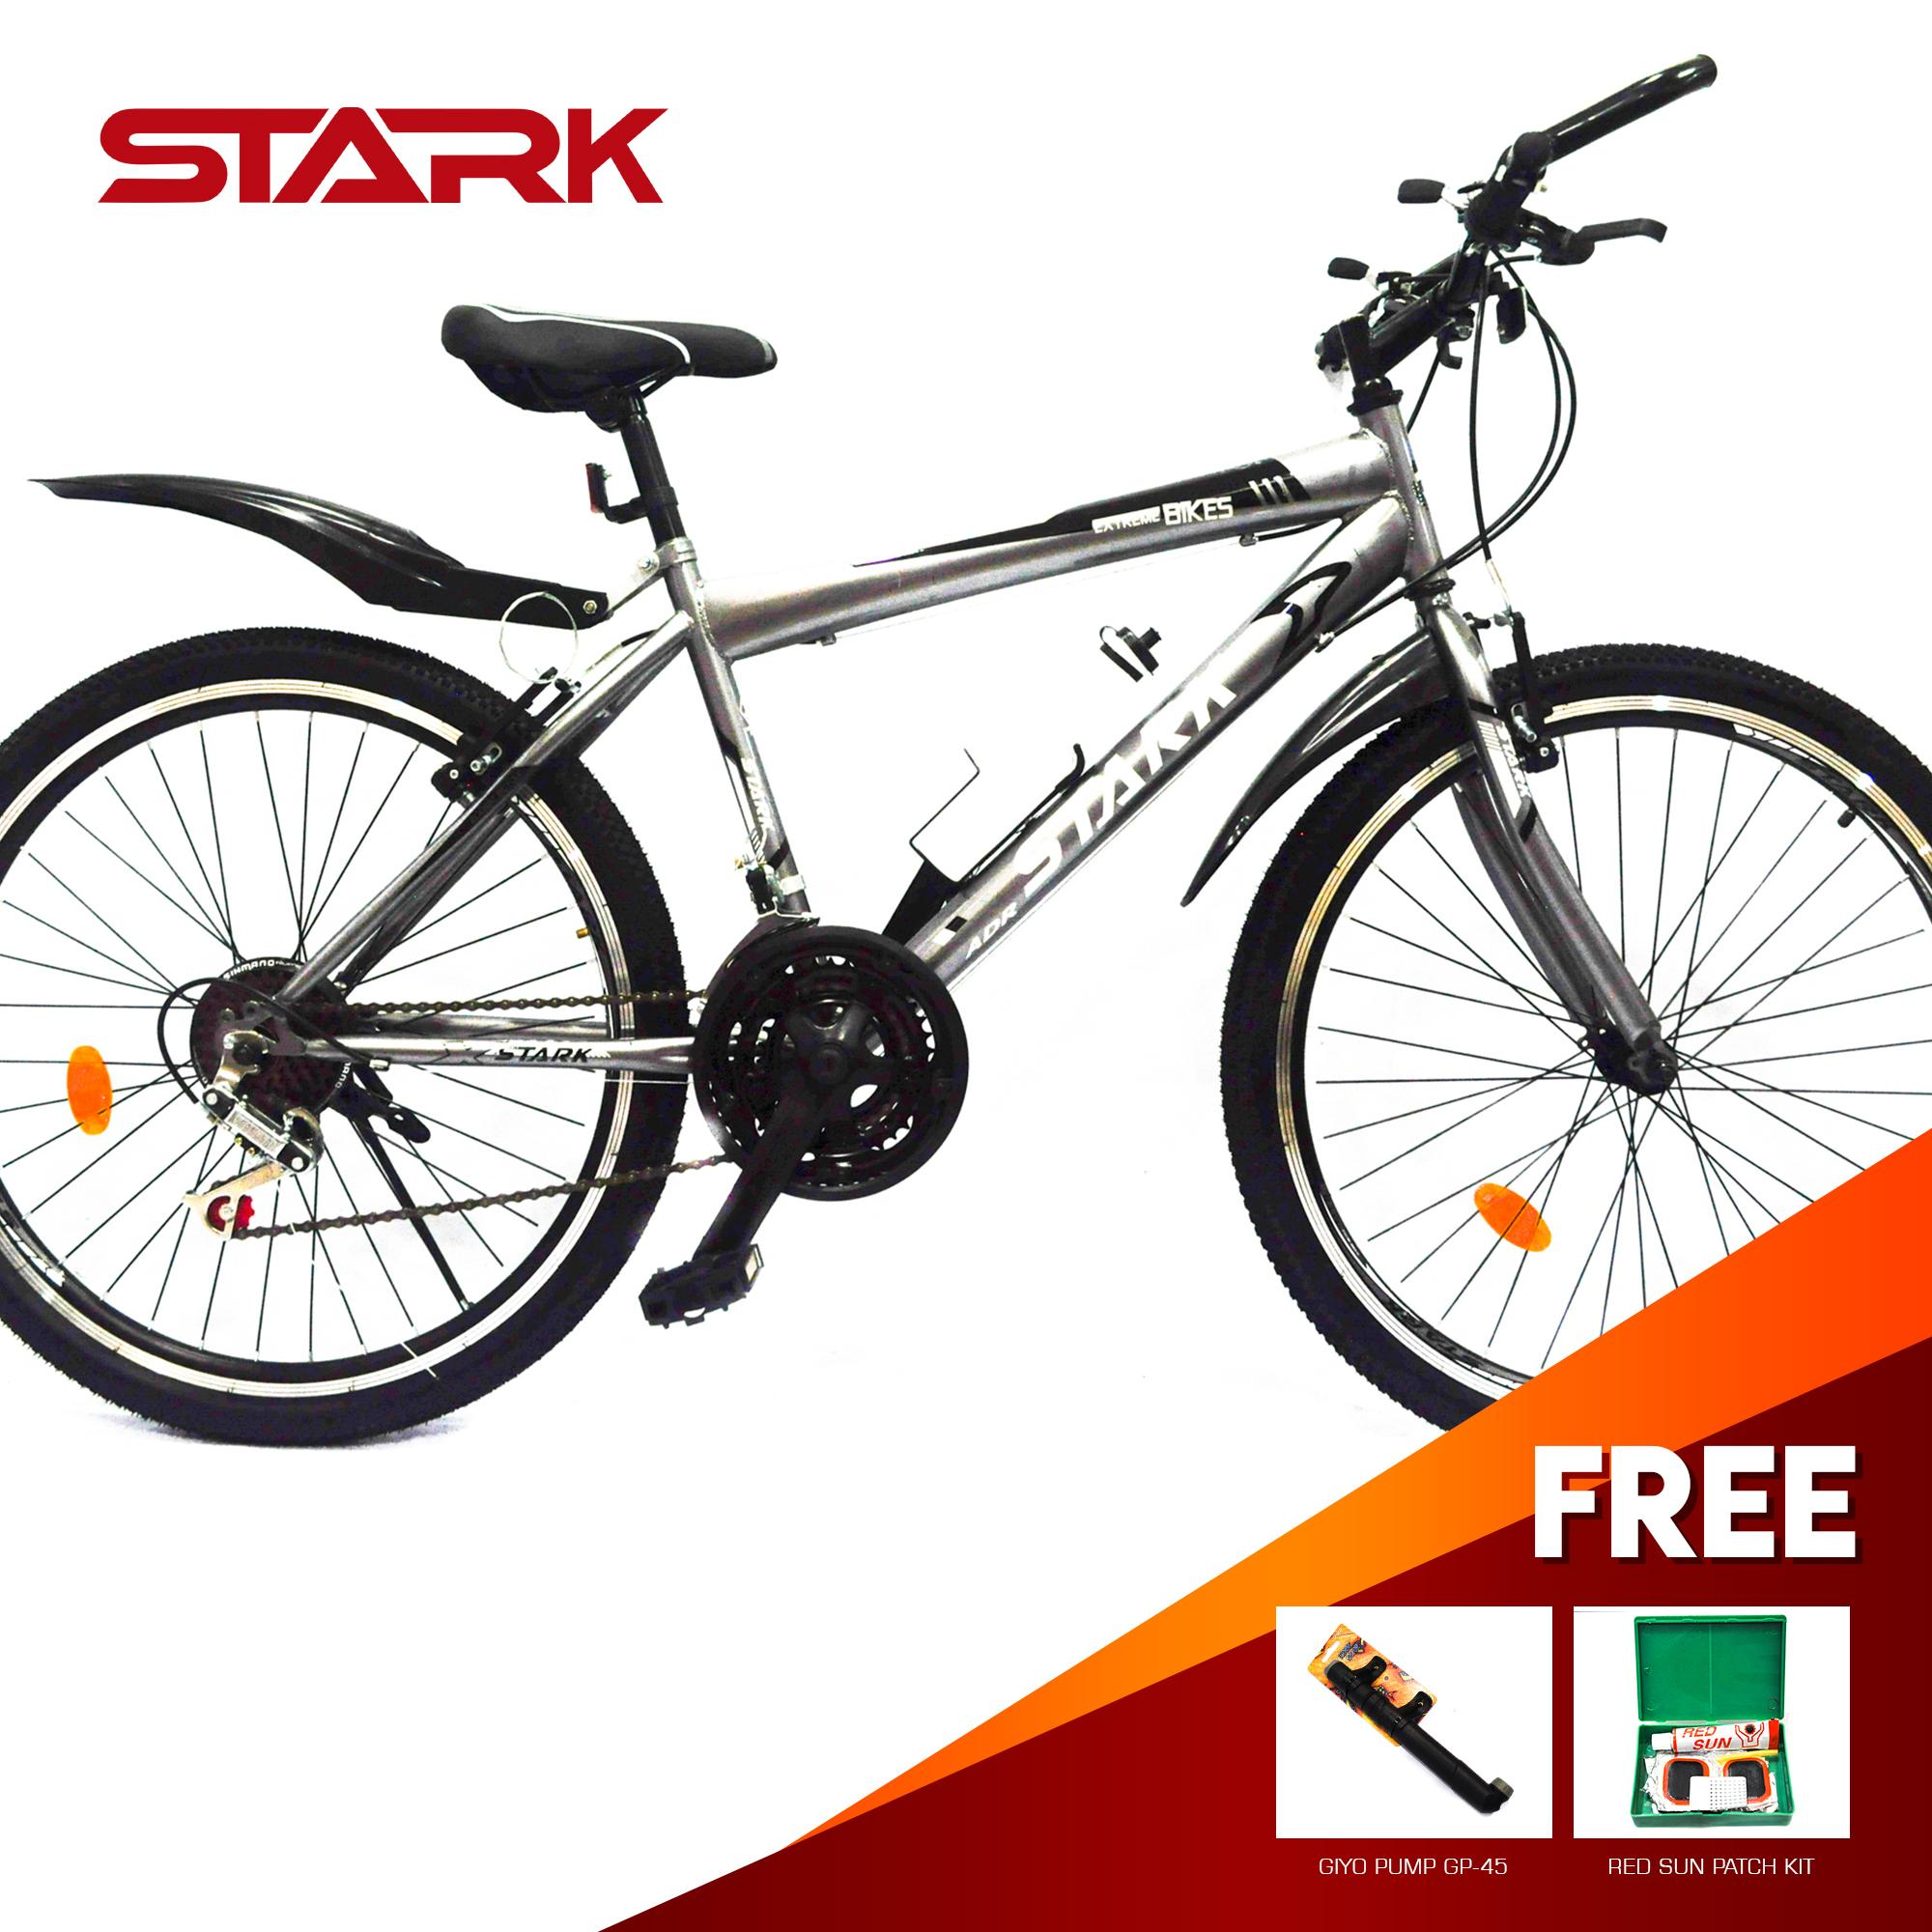 Stark Mountain Bike # 26 Double Wall Rim V-brakes Grey WITH FREE TIRE PATCH  AND GIYO PUMP 45